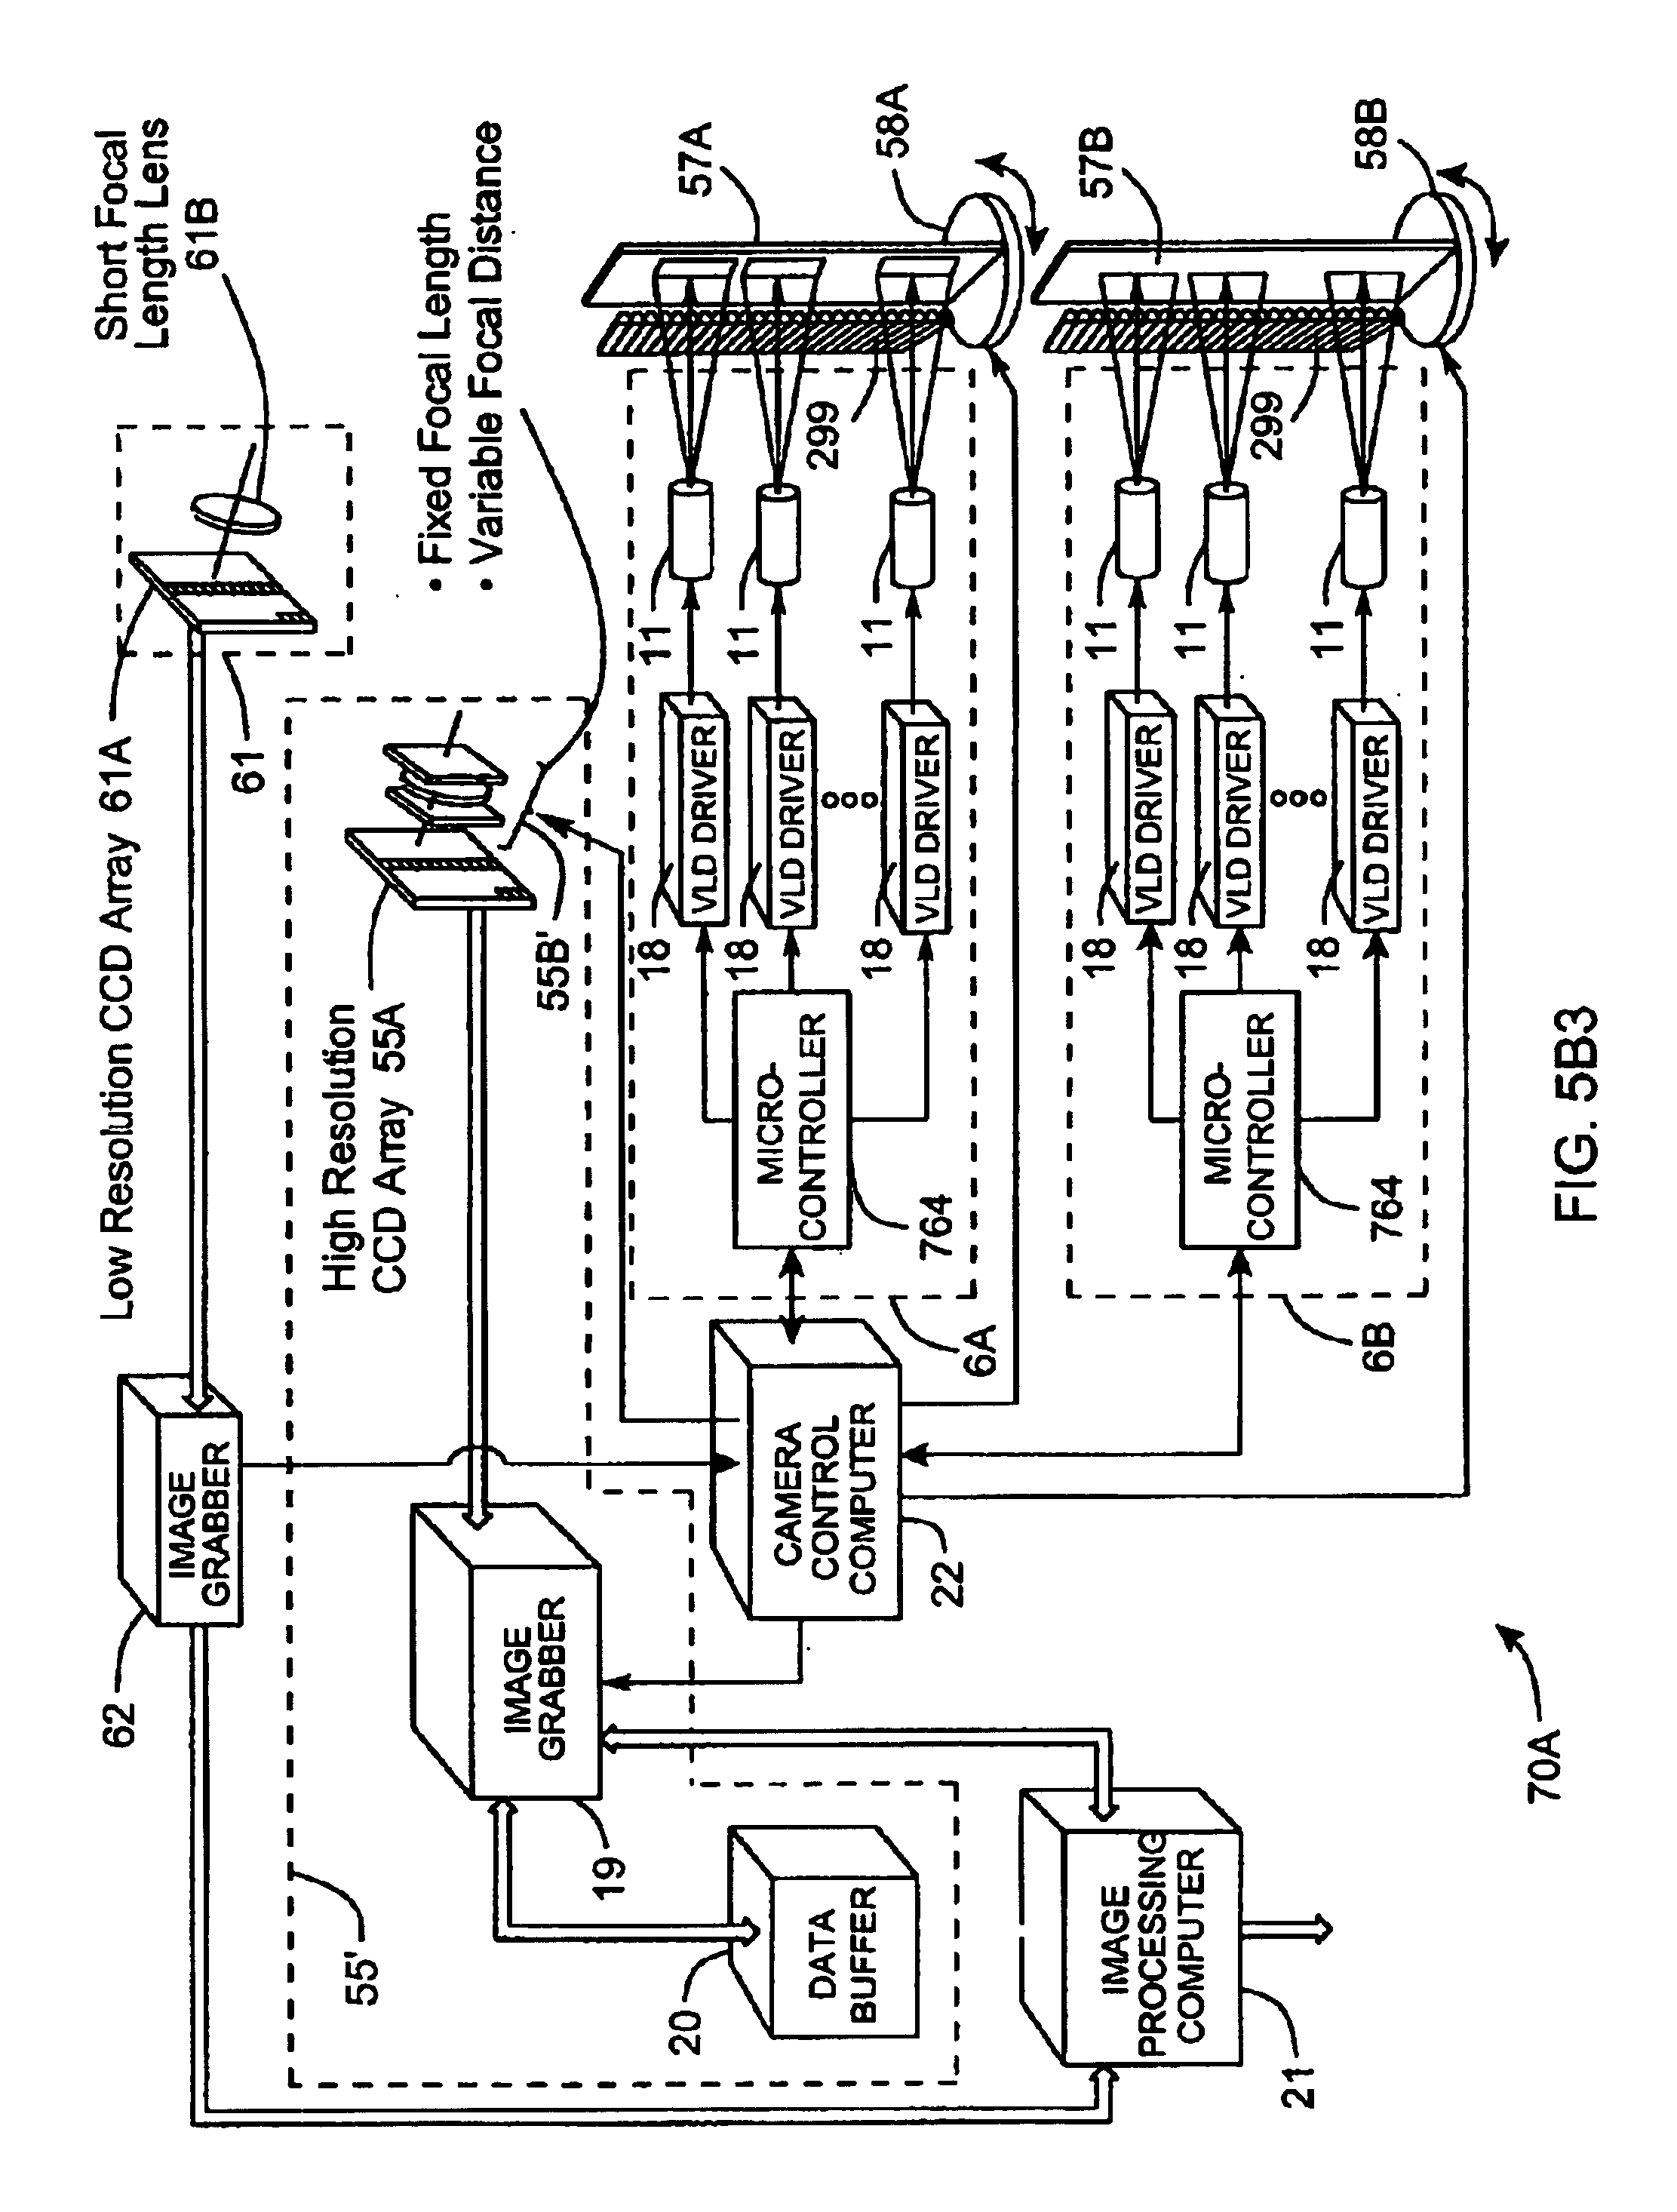 Patent Us 7086594 B2 Led Driver Circuit Diagram Likewise Besides Images